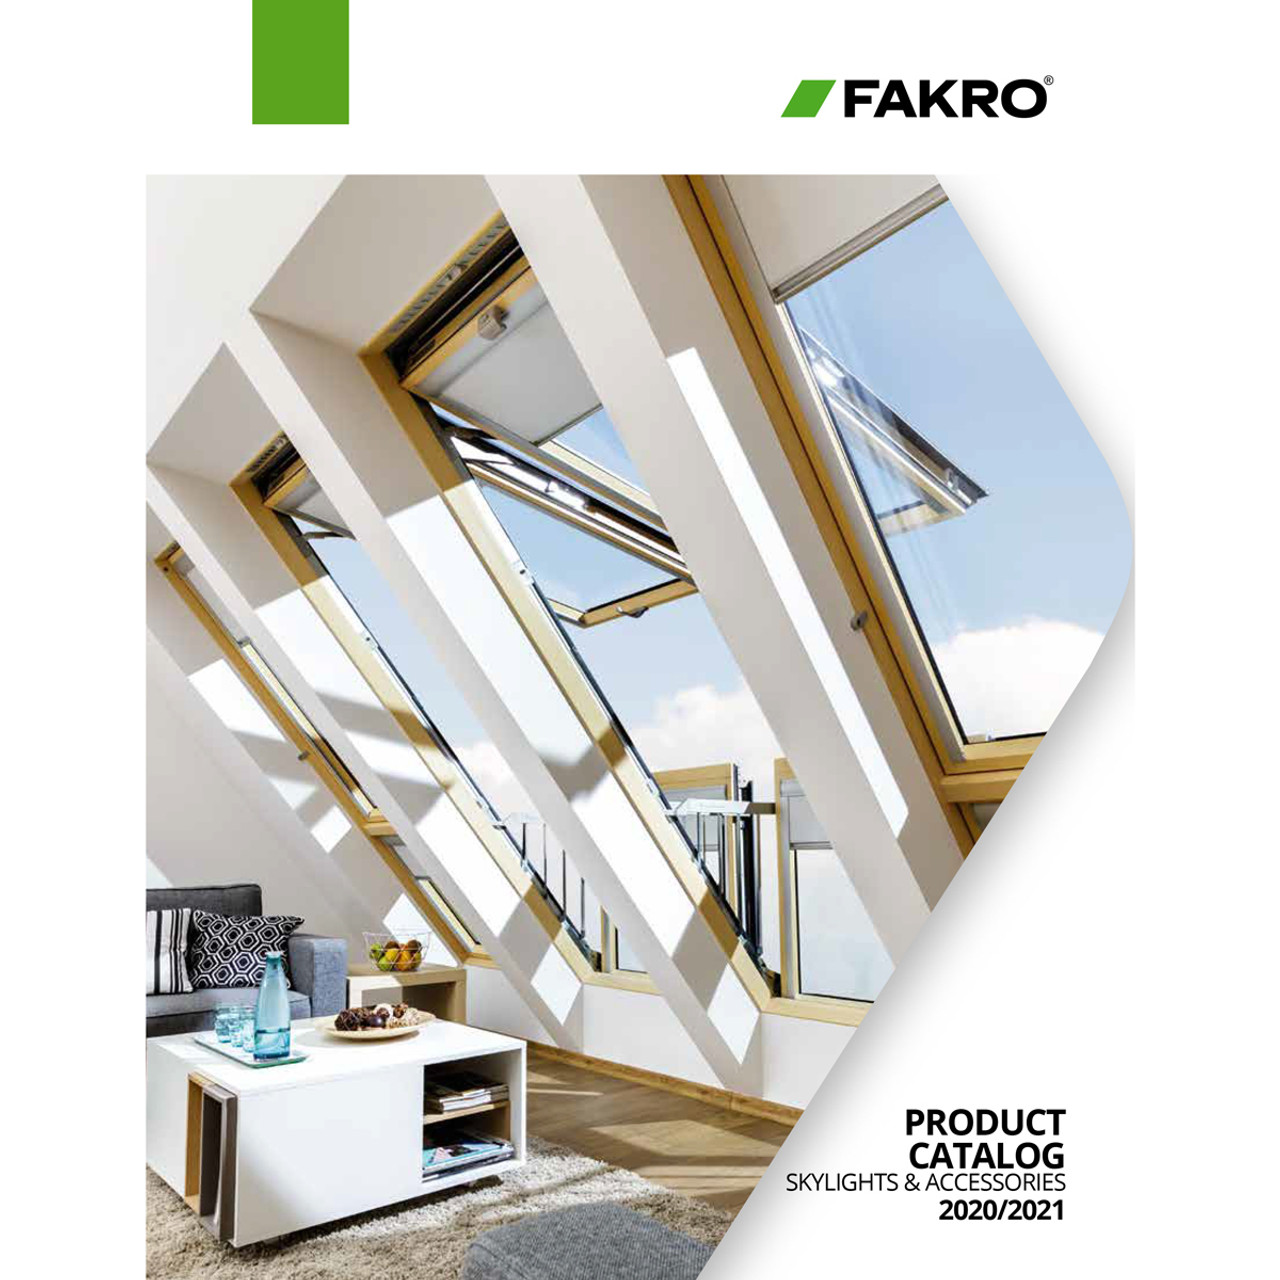 *** Fakro Product Information